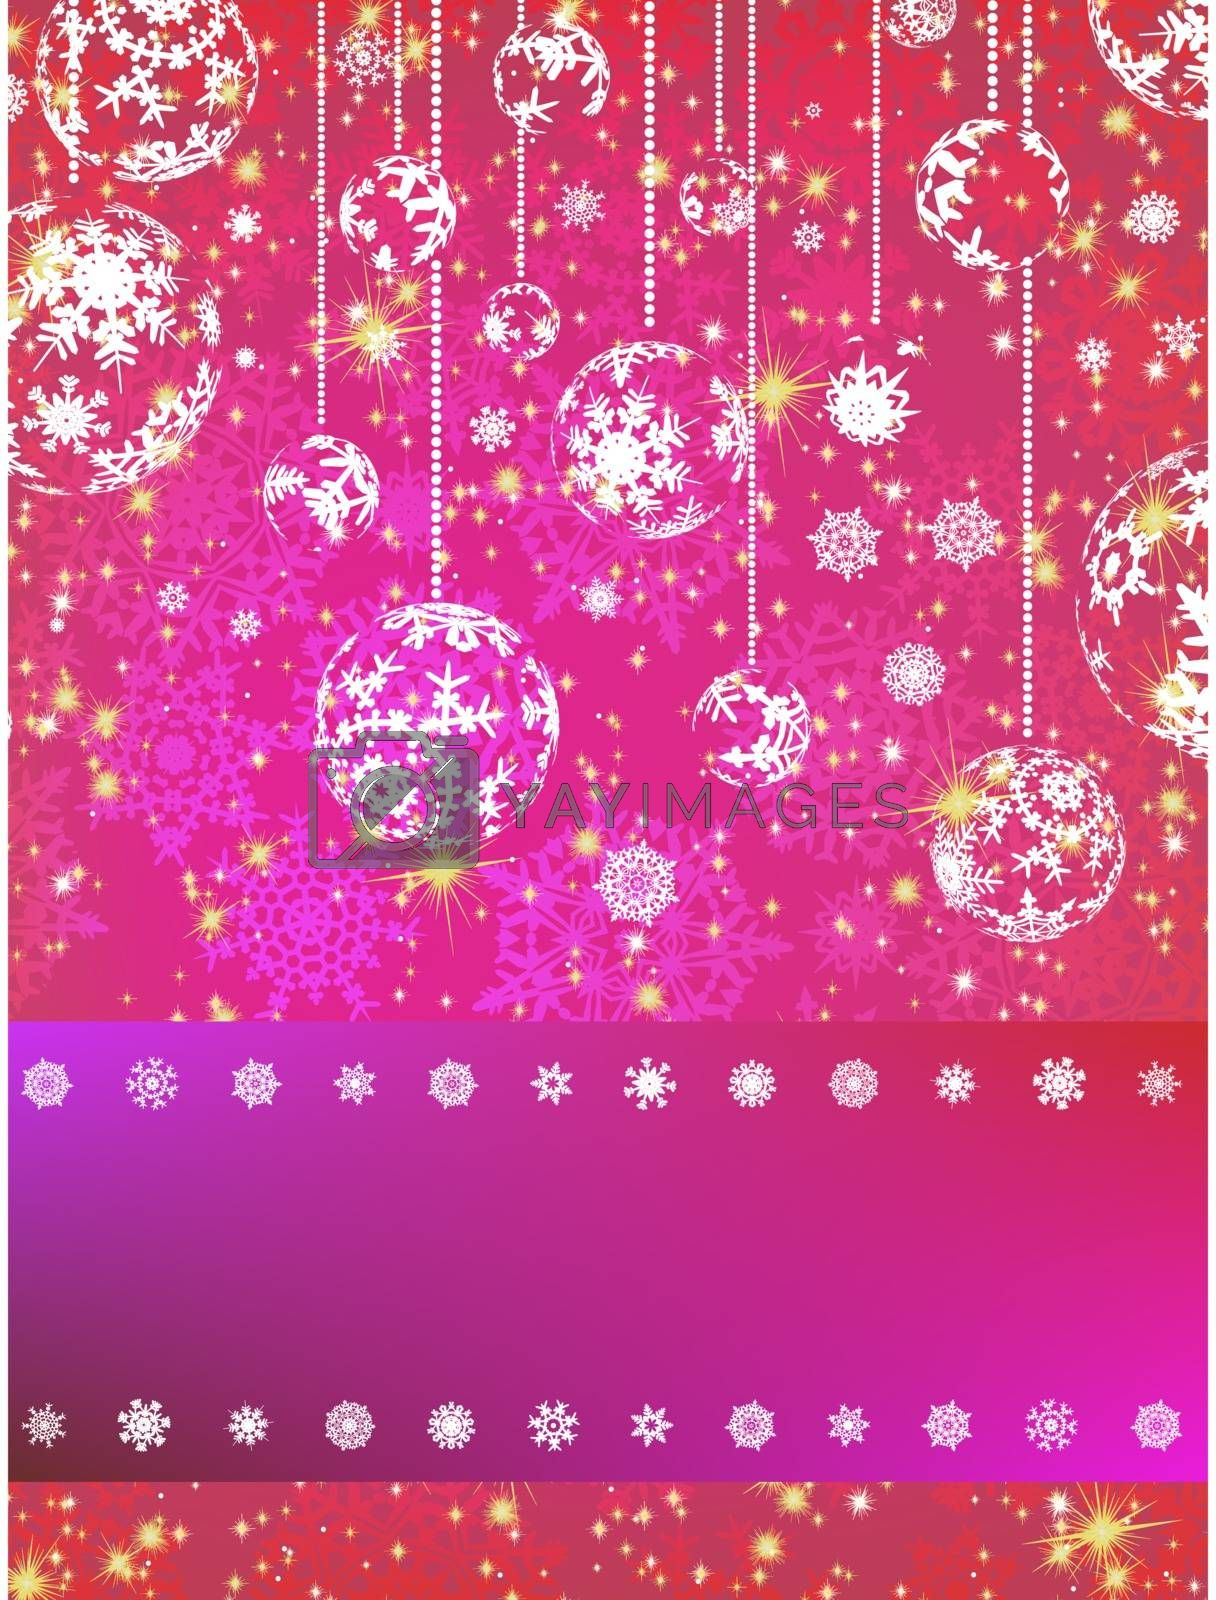 Pink Christmas Background. EPS 8 vector file included